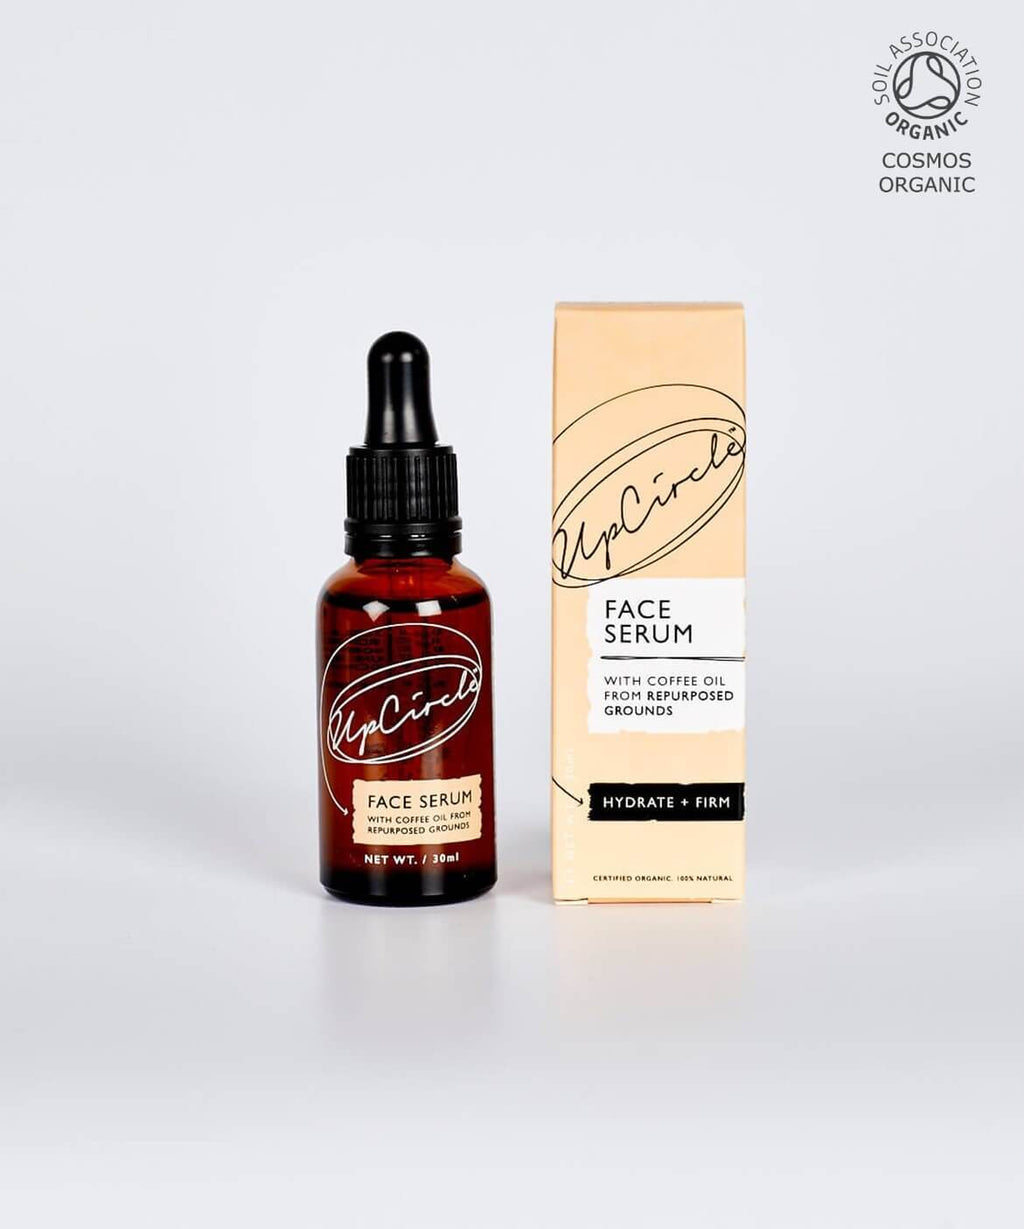 Organic Face Serum with Coffee by UpCircle Face Serum